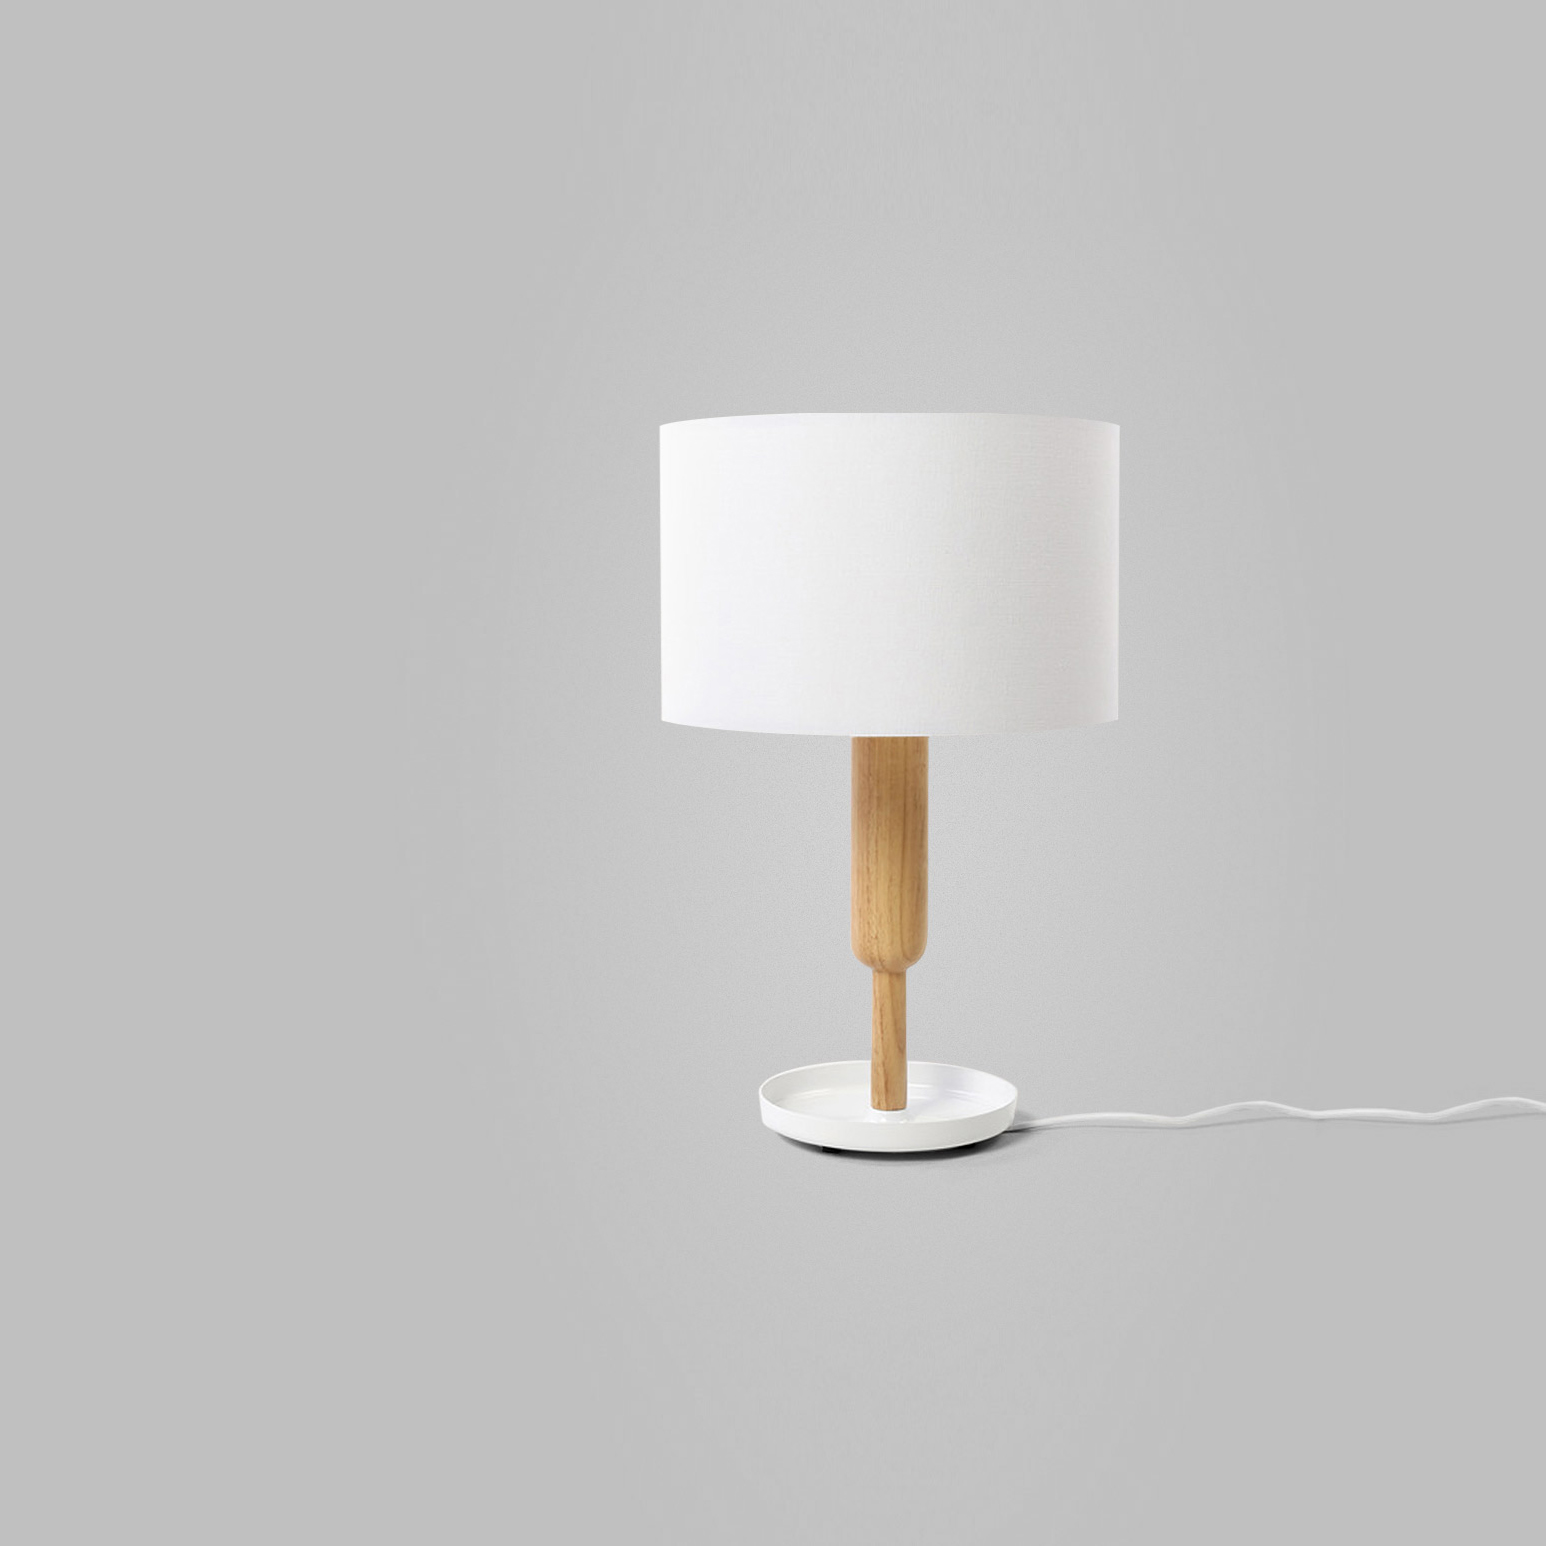 Fetch Lamp   Client: Fab 2014  The Fetch Lamp was the perfect combination of design and utility. An elegant accent, Clabots designed it to also serve as a neat storage space for small knickknacks. The unique, inverted shape of the lamp's base turned commonly-held design conventions on their heads while adding a touch of elegance.